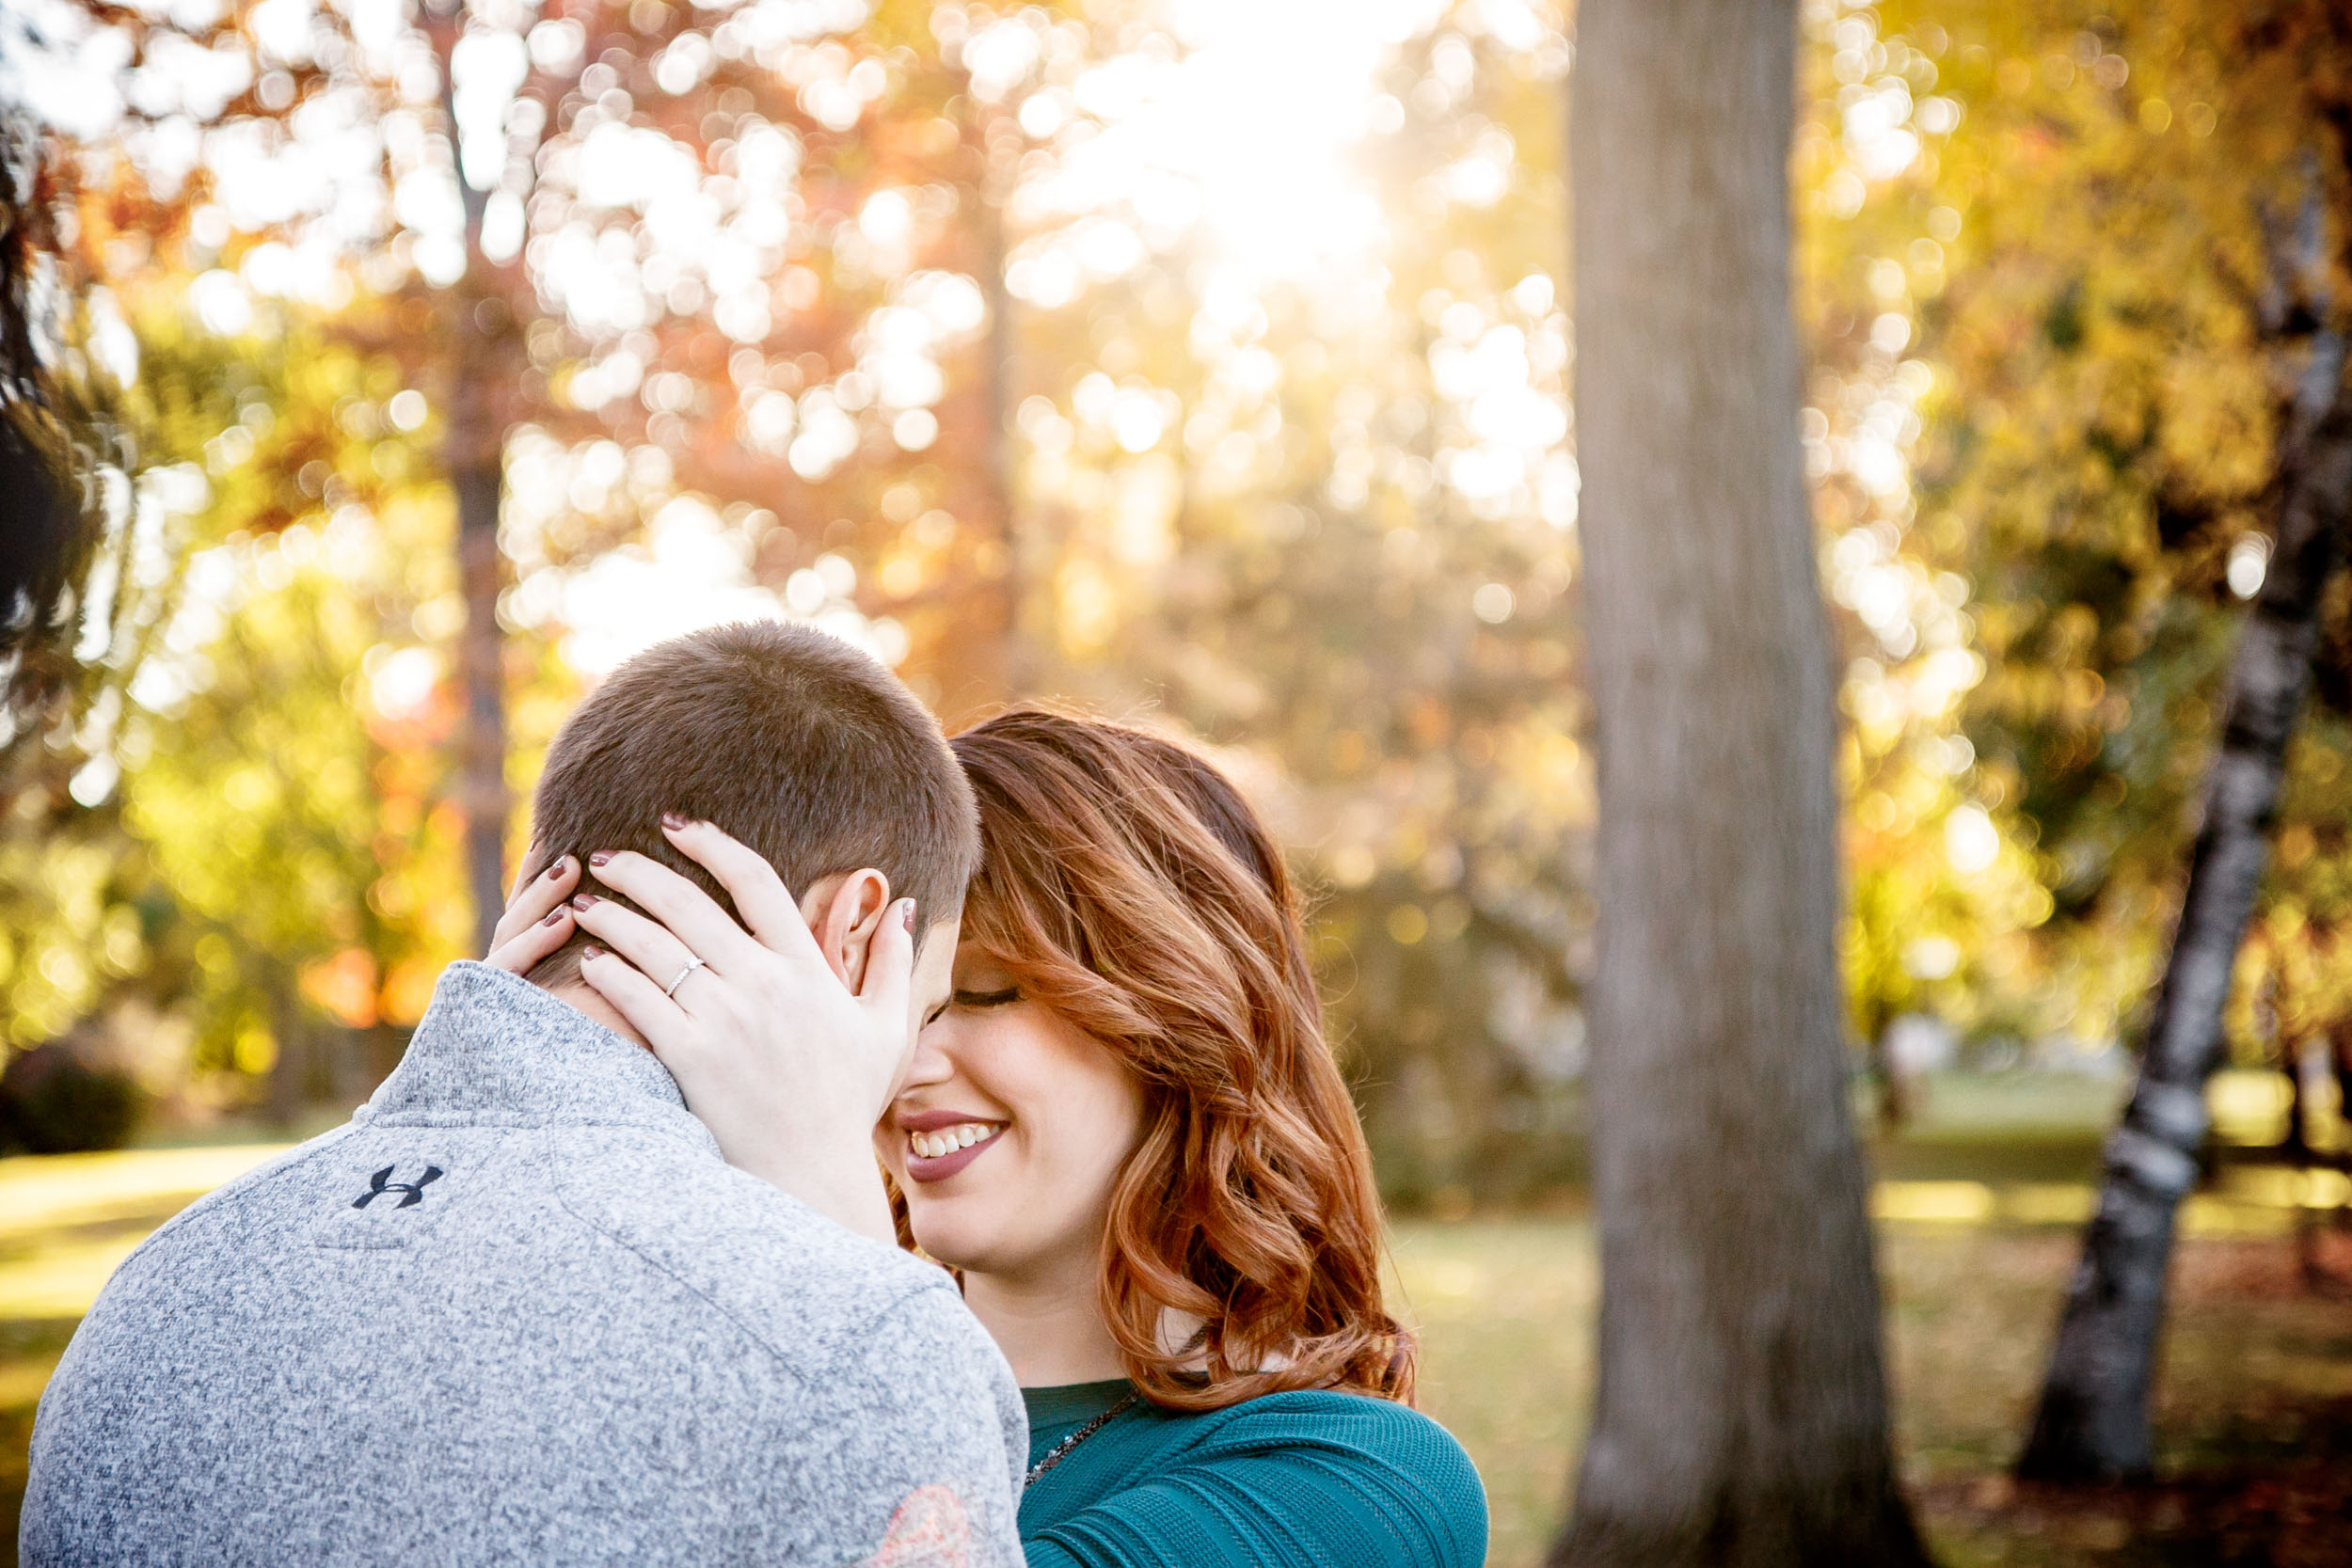 Hayrides. Freshly picked apples. Pumpkin everything. There's so much to love about fall – and, in addition to being one of my favorite seasons, it's also one of my favorite times to photograph couples. If you're engaged and thinking about a fall photoshoot, here's what you should know.